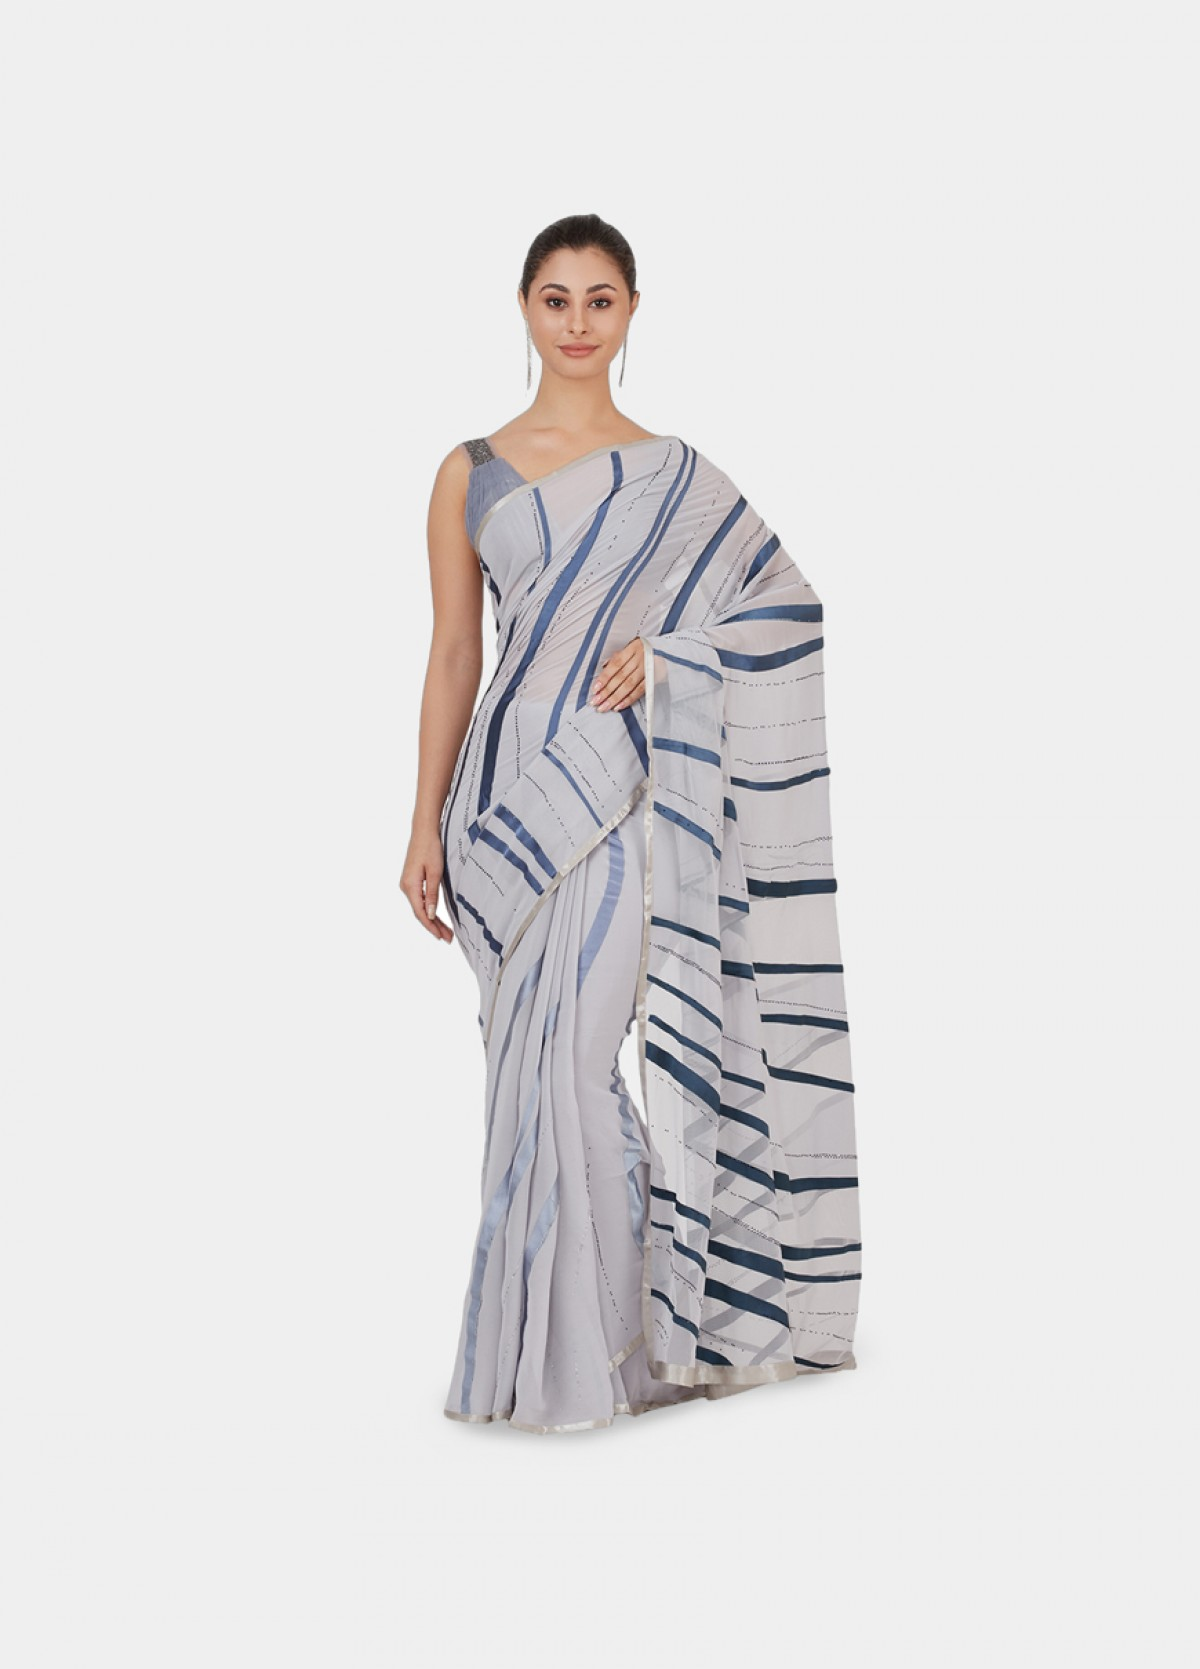 The Meandering Muse Sari